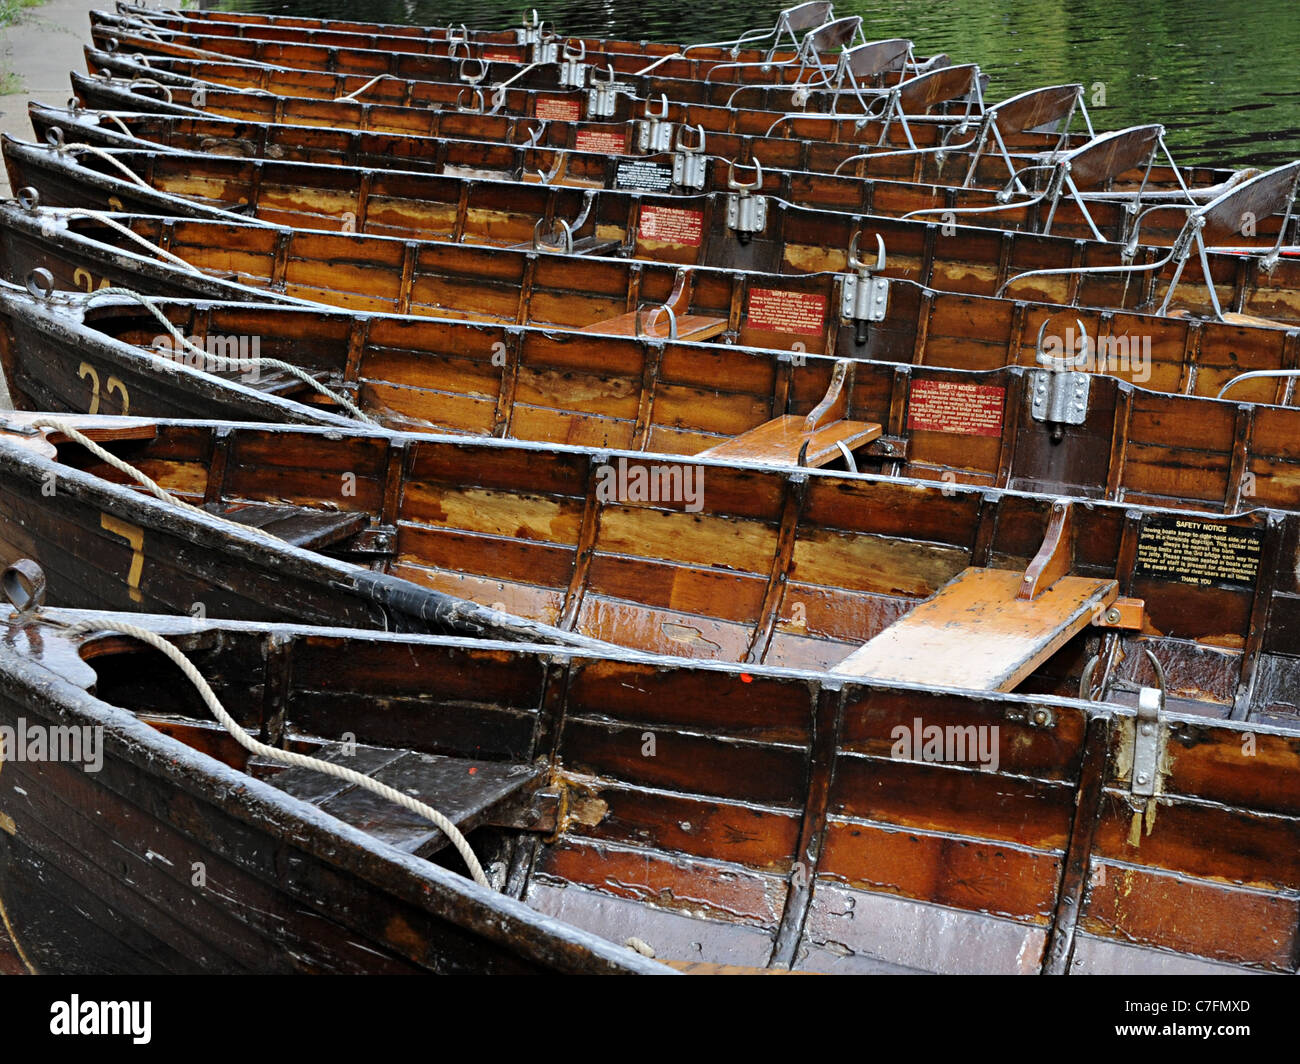 old wooden punts on the River Wear in Durham - Stock Image